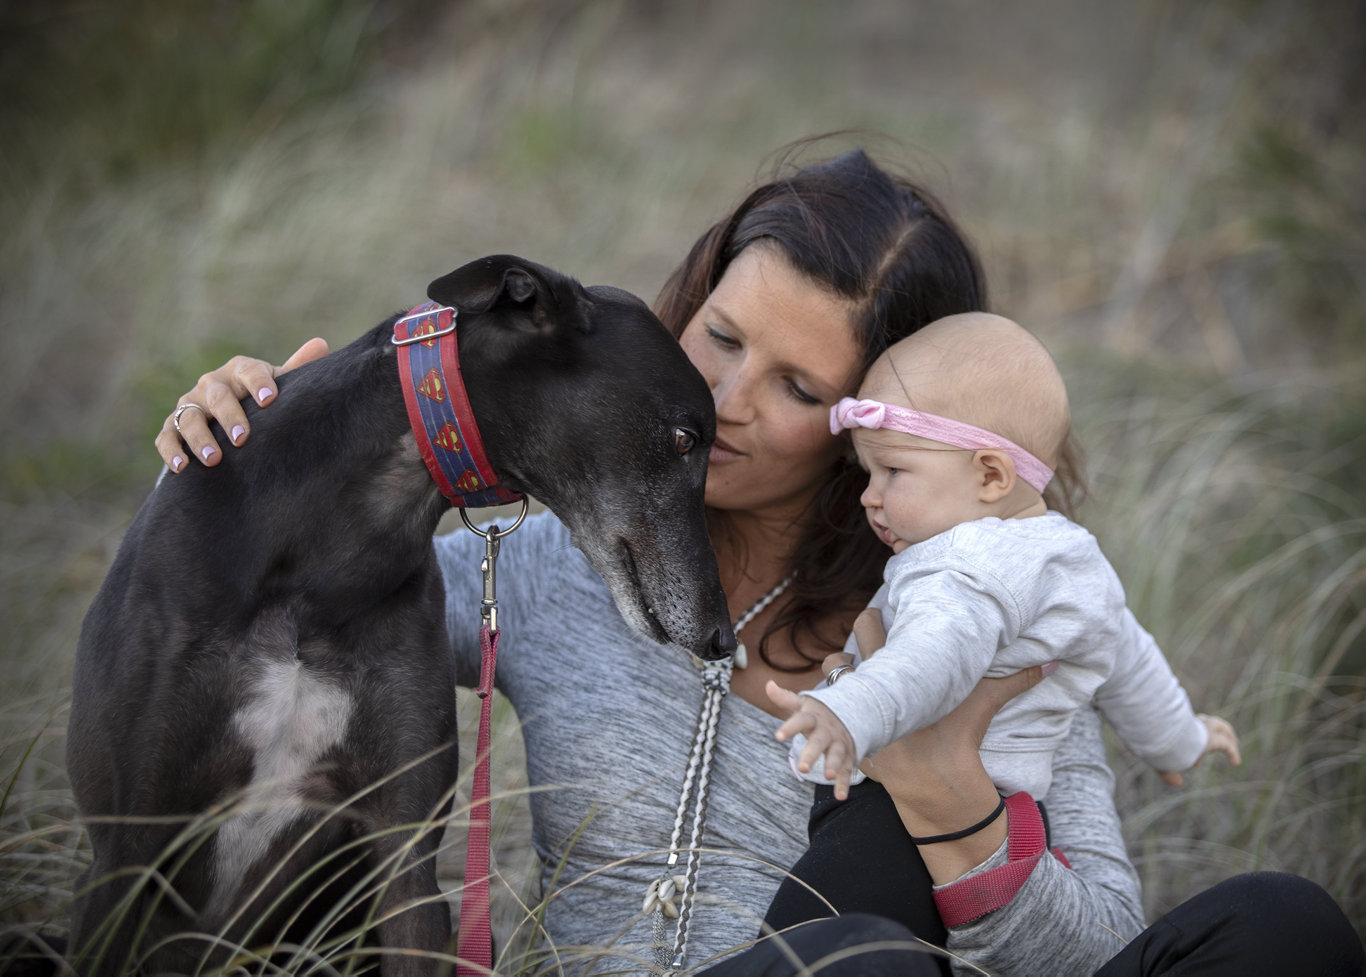 Aleisha Henslee with Otis the greyhound and their baby daughter.